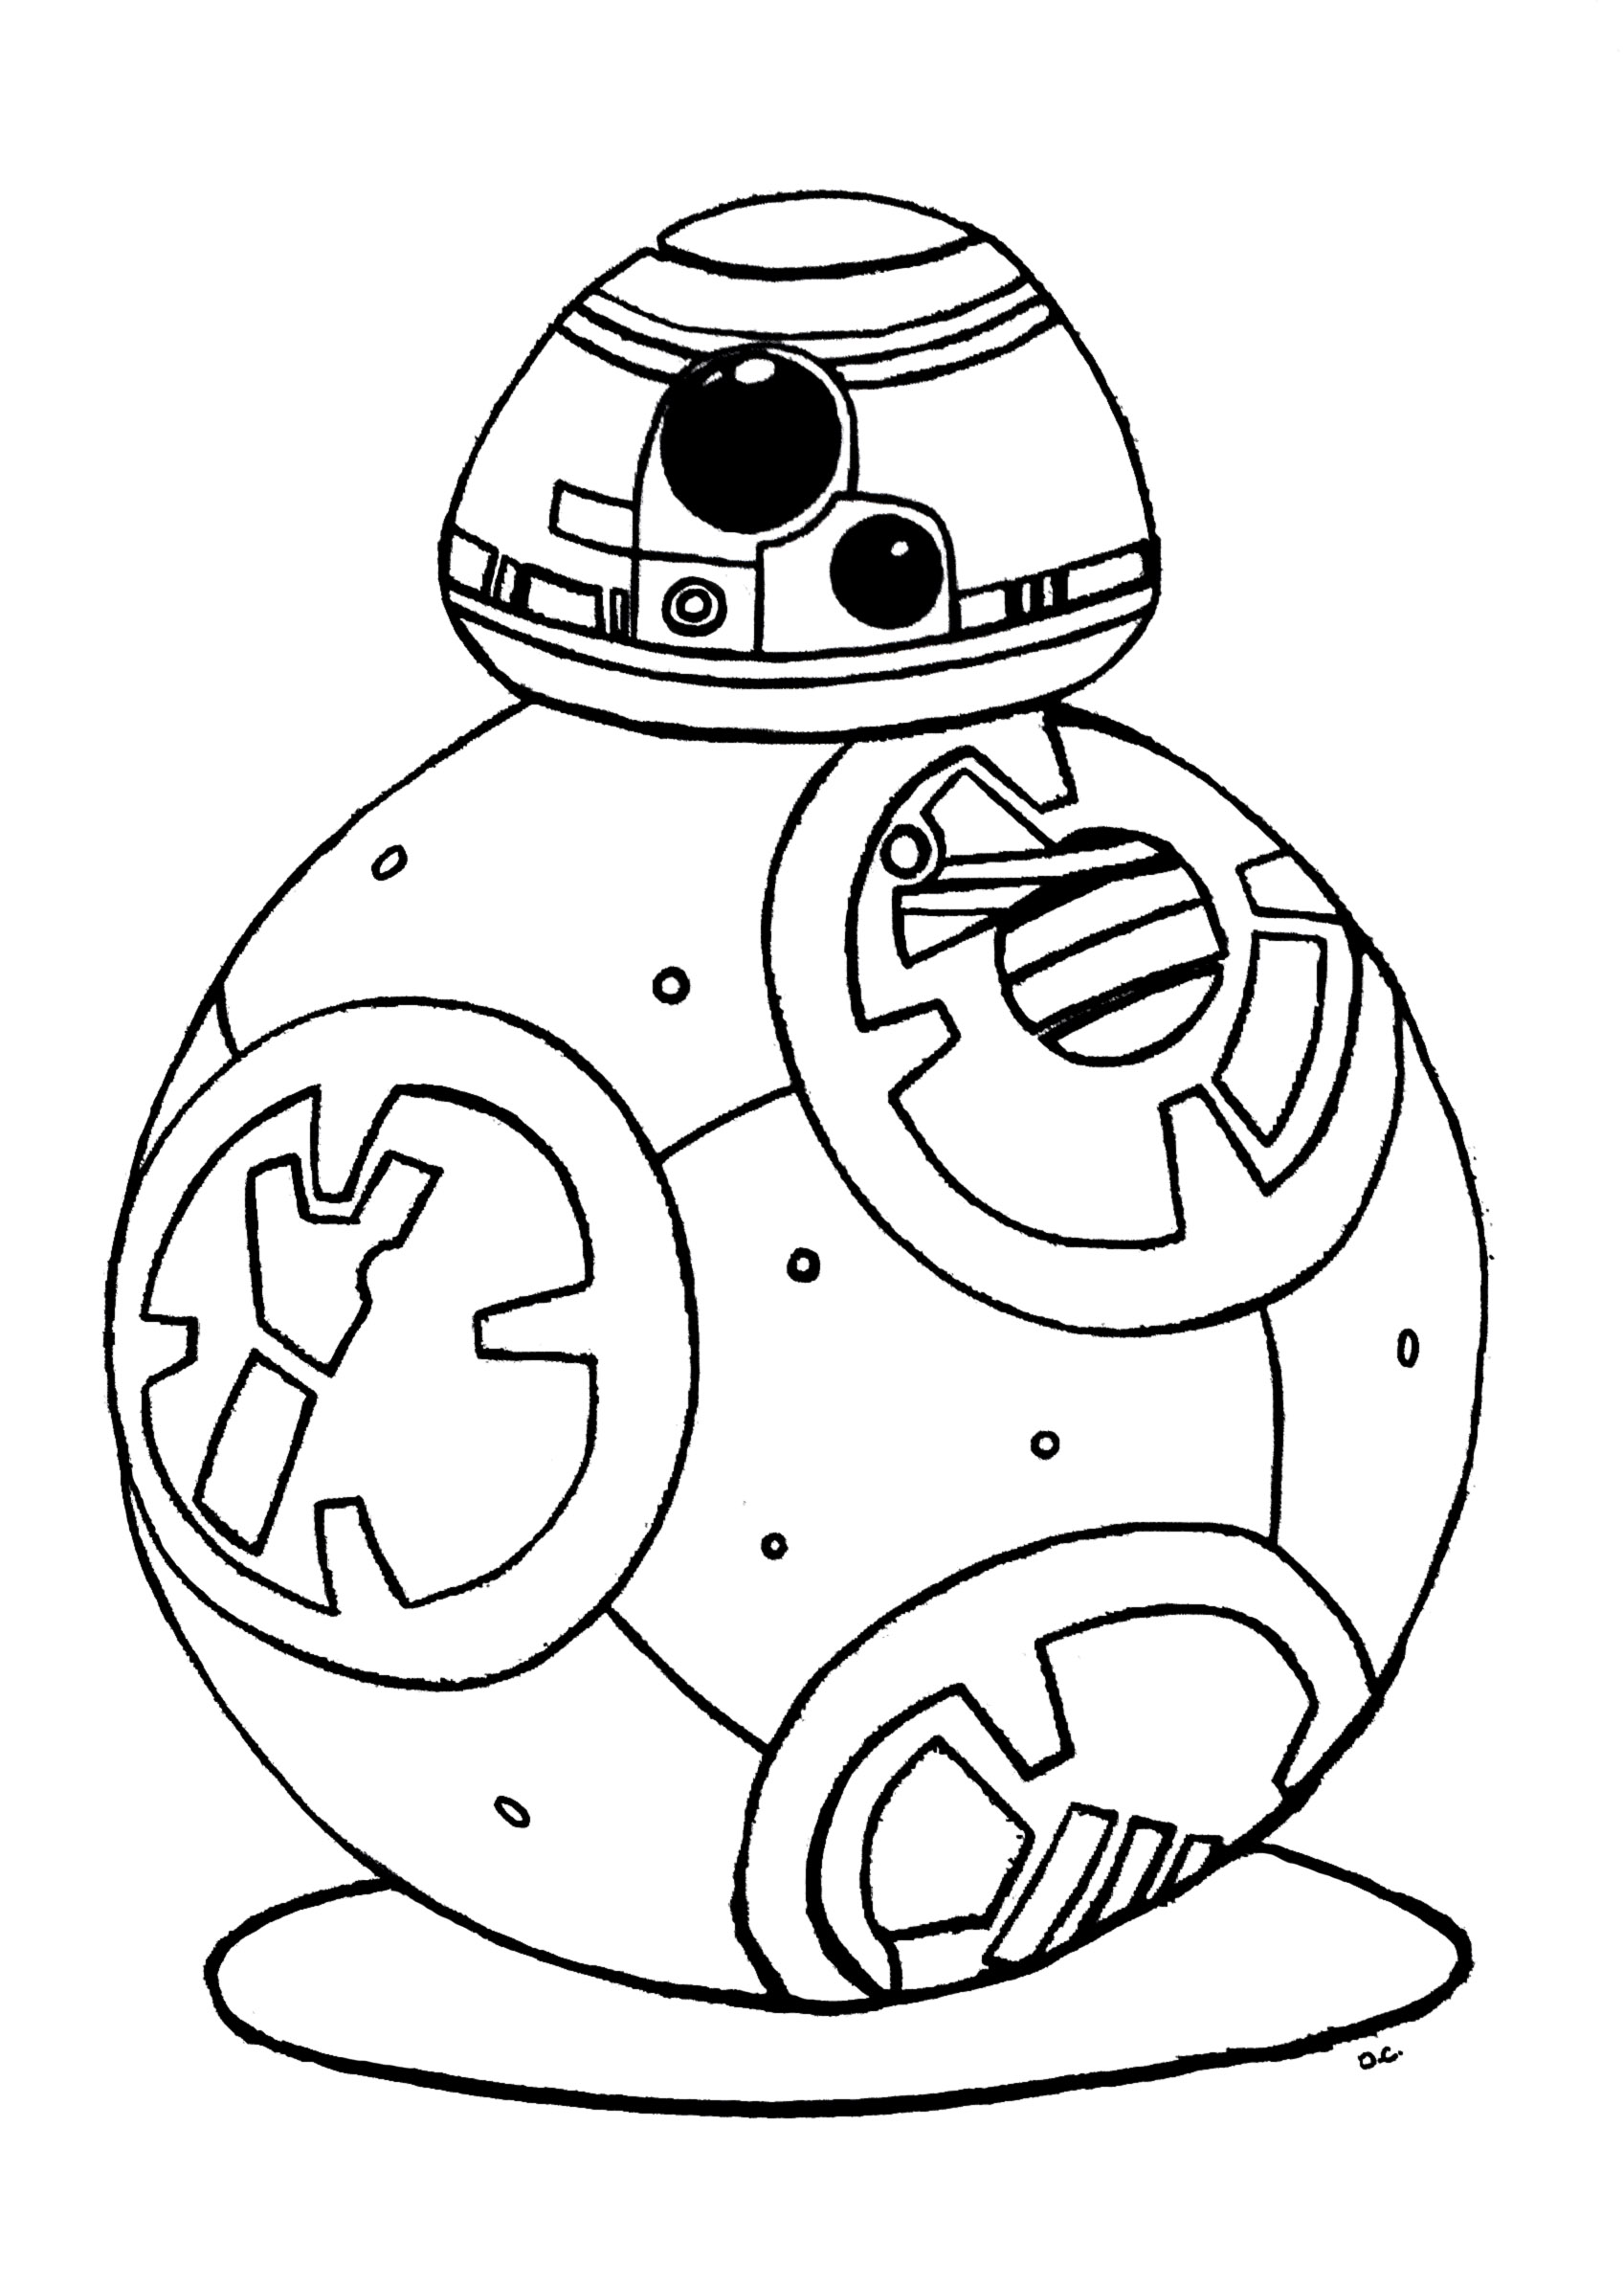 Star wars to download - Star Wars Kids Coloring Pages